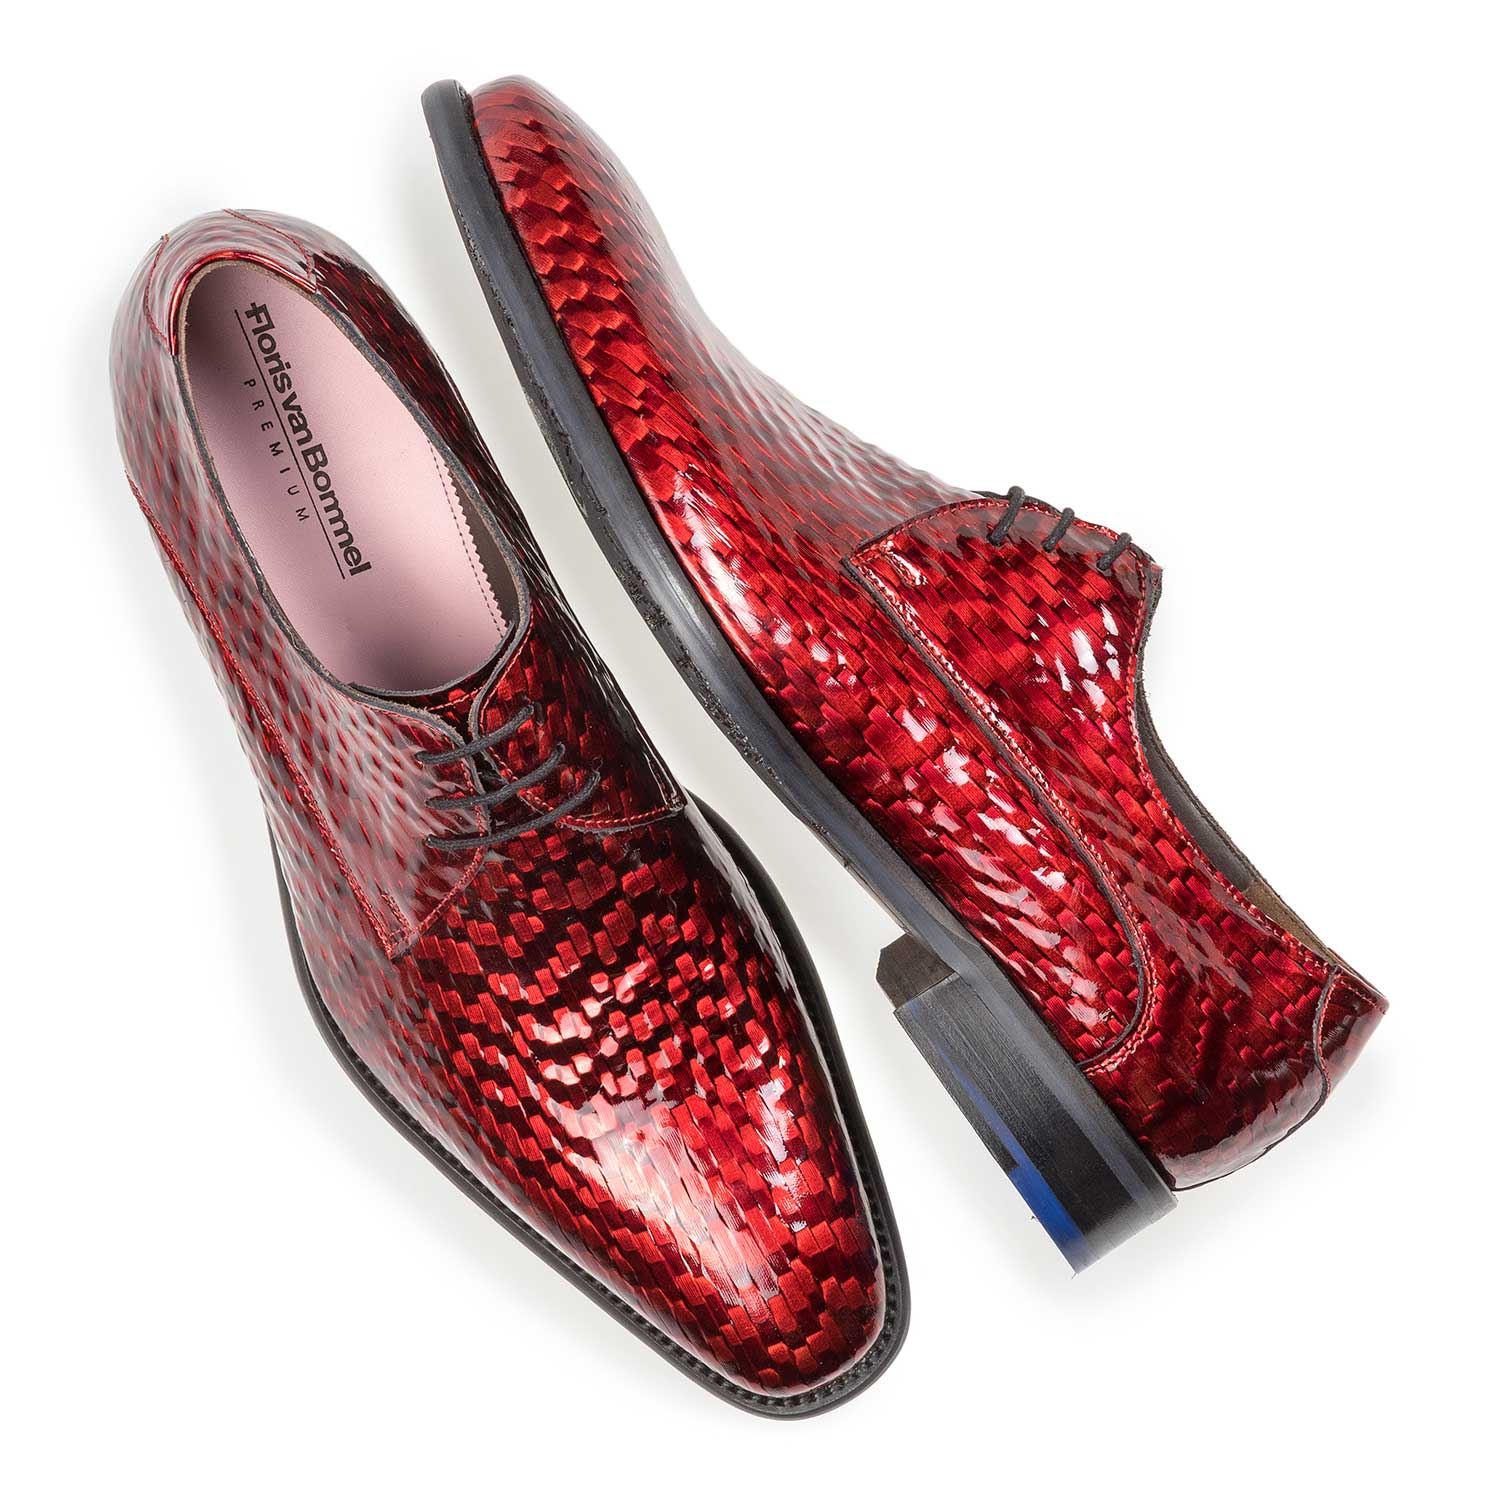 18123/01 - Premium red printed patent leather lace shoe